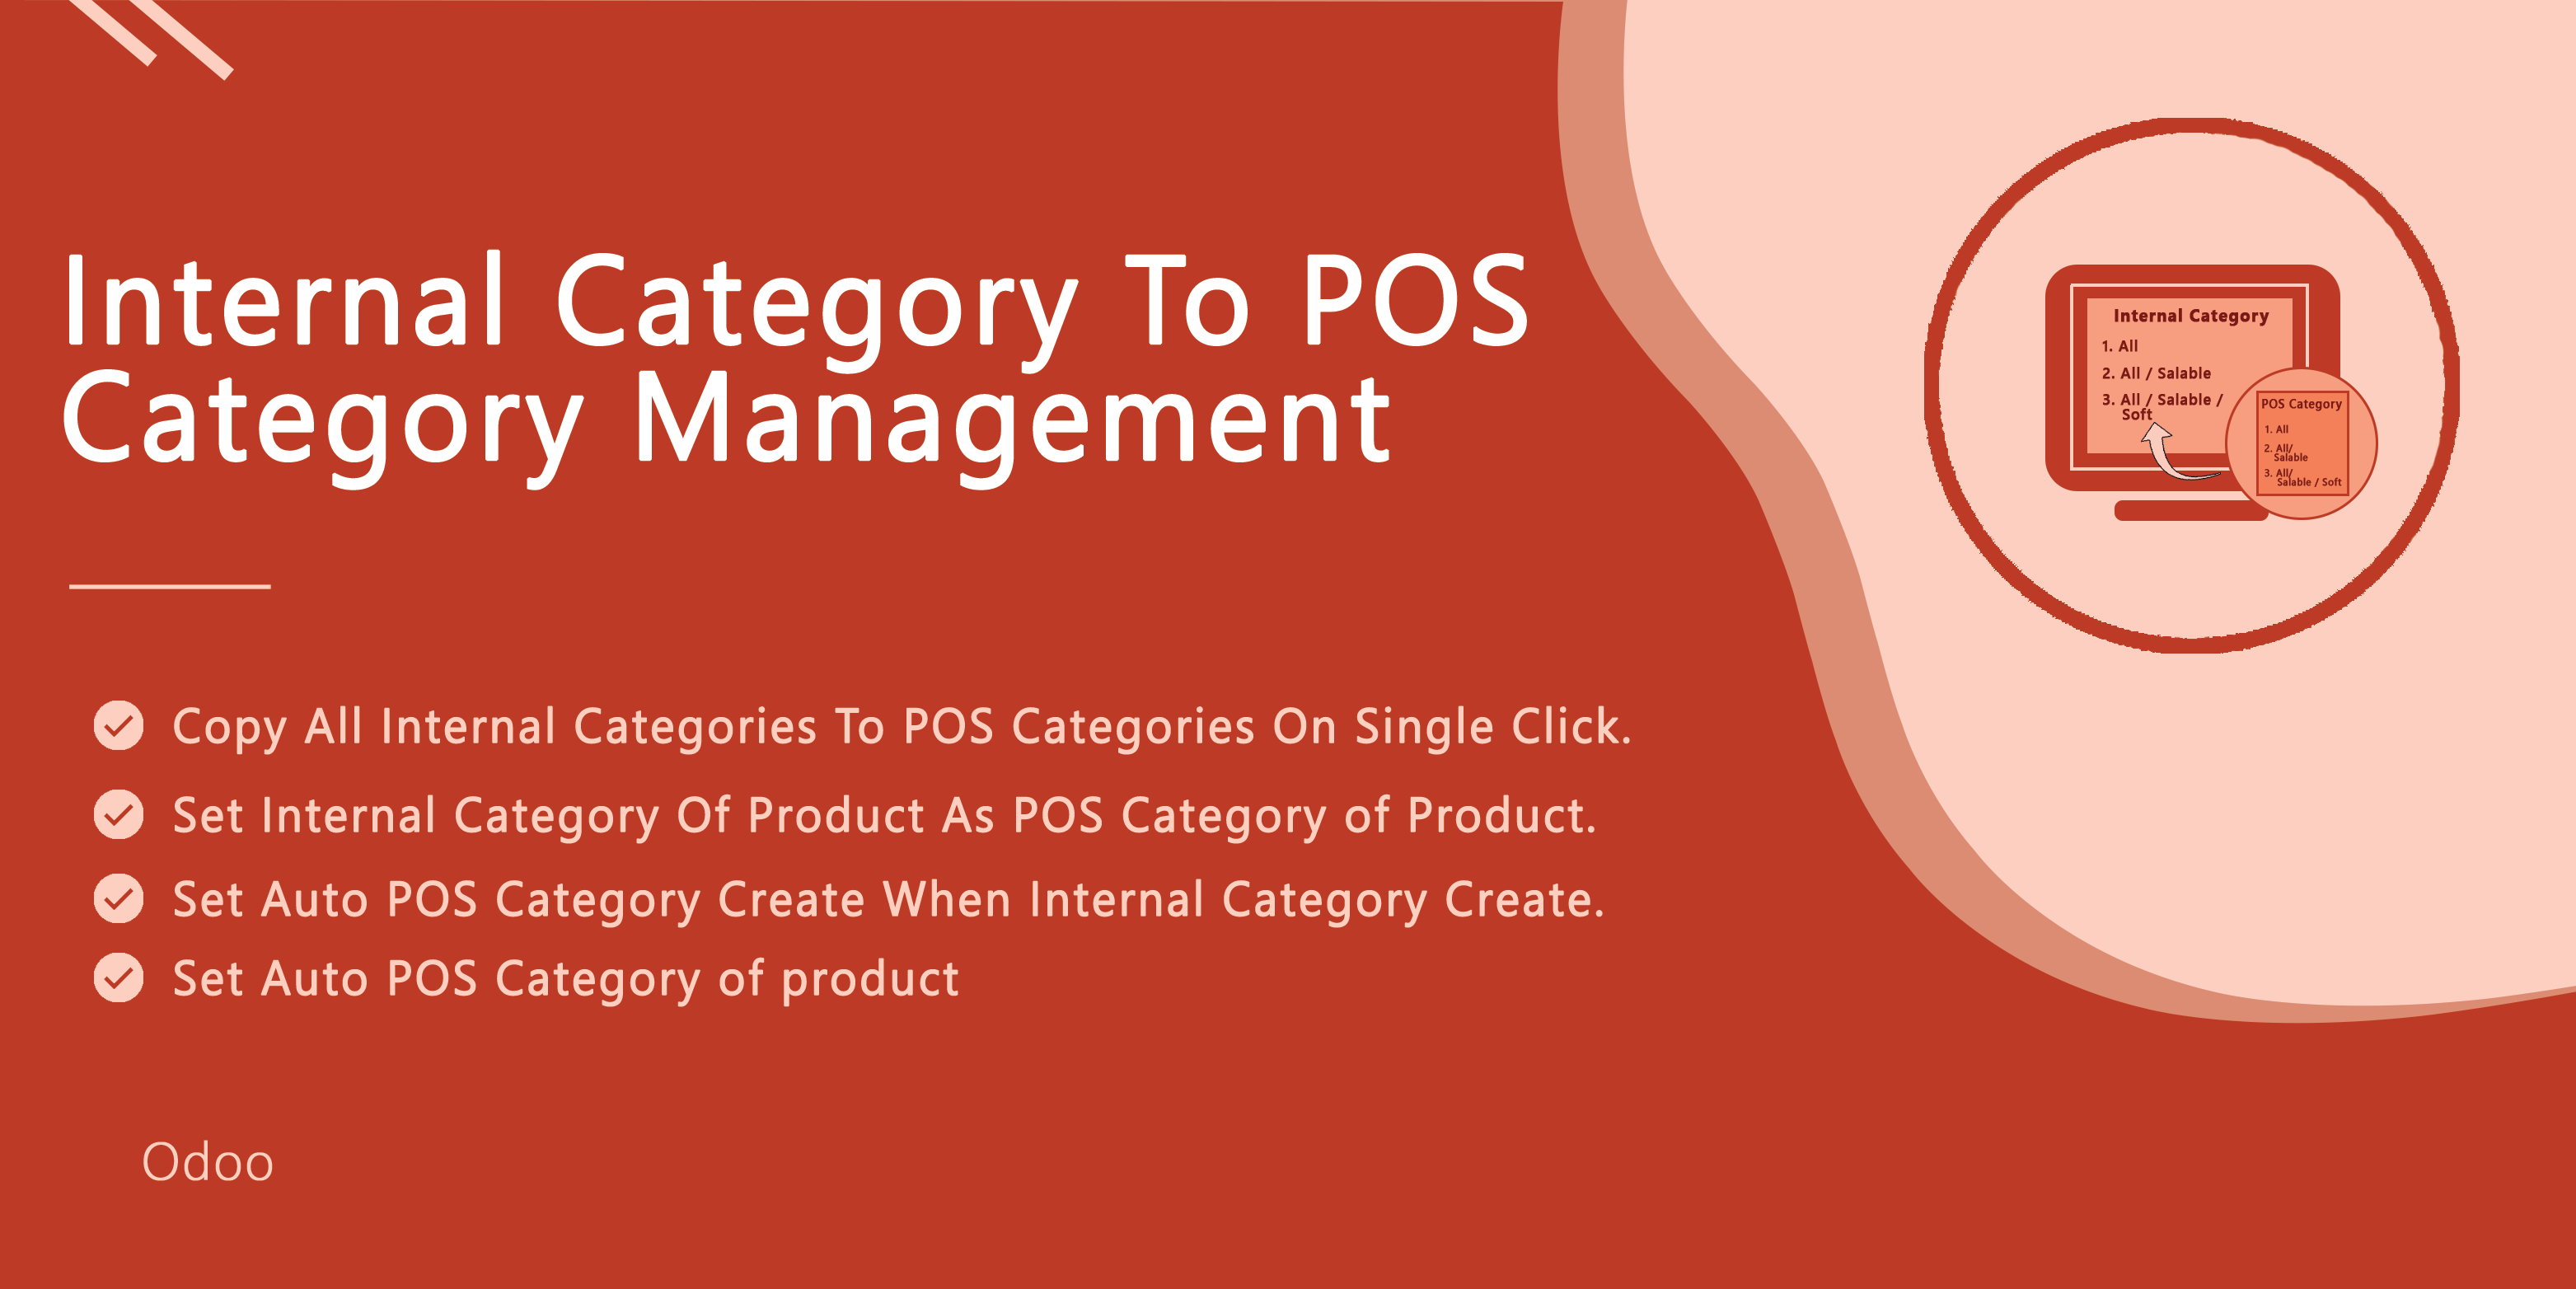 Internal Category To POS Category Management